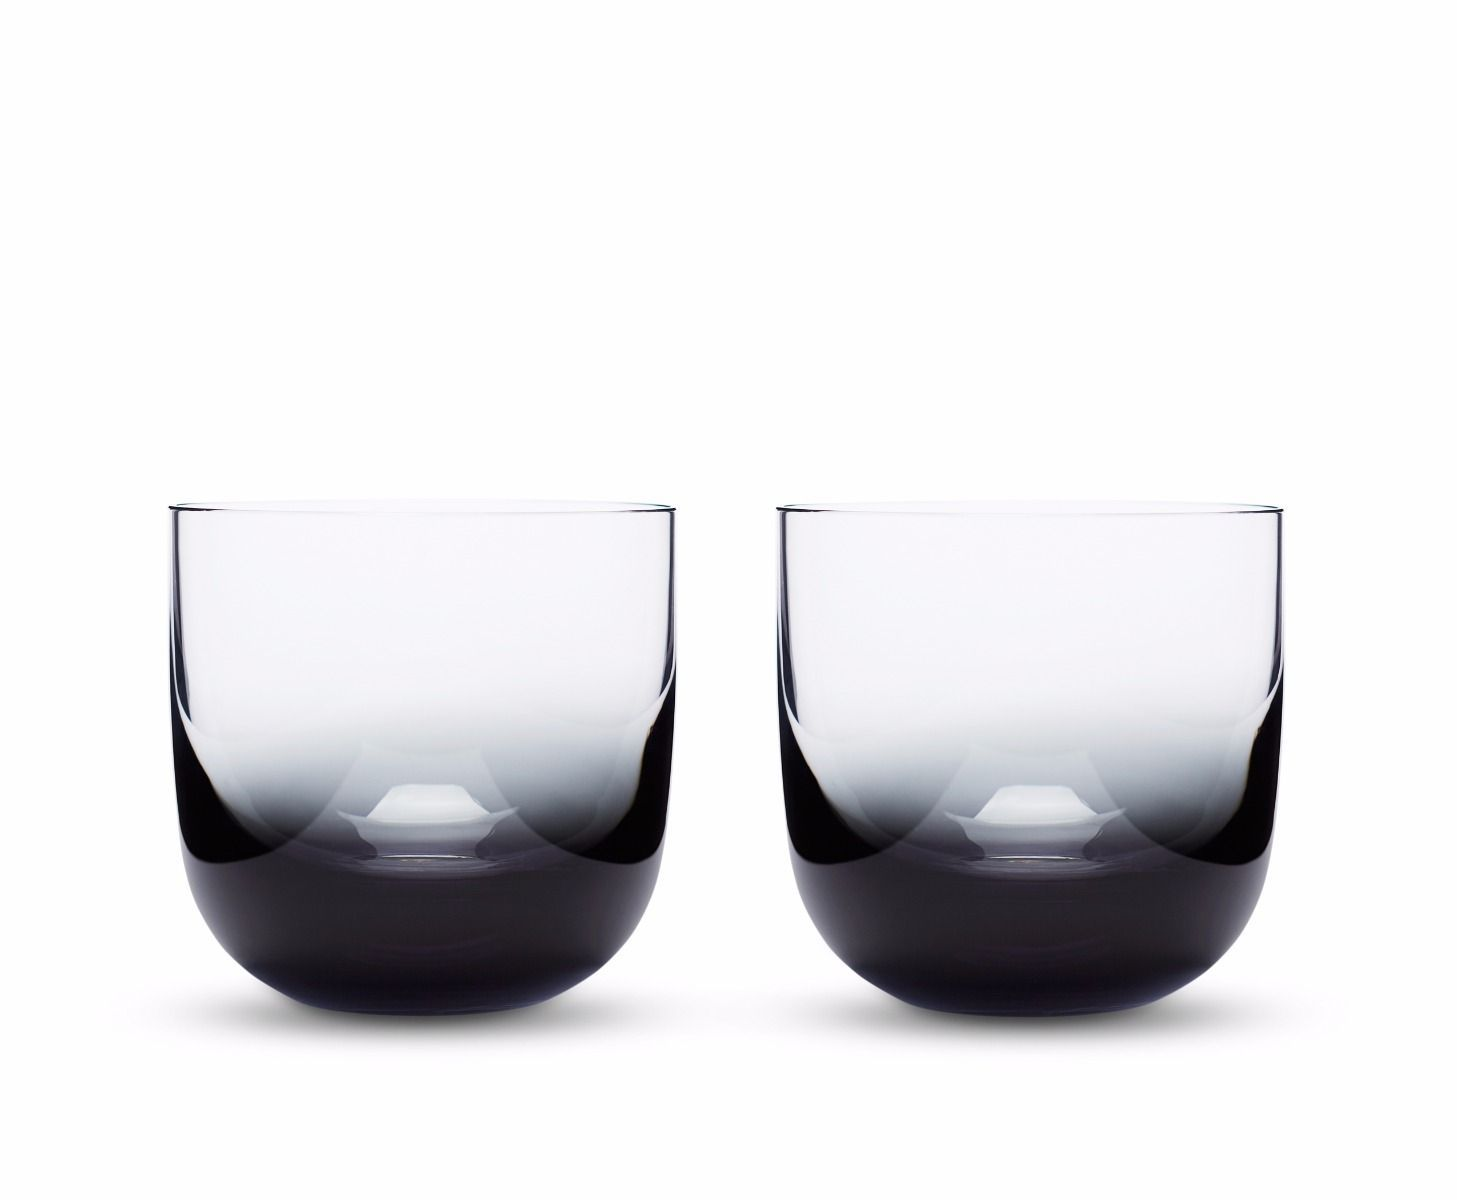 Tank Whiskey Glasses Black X2 Kitchen Dining Tomdixon Net Whiskey Glasses Whiskey Glasses Set Glassware Collection